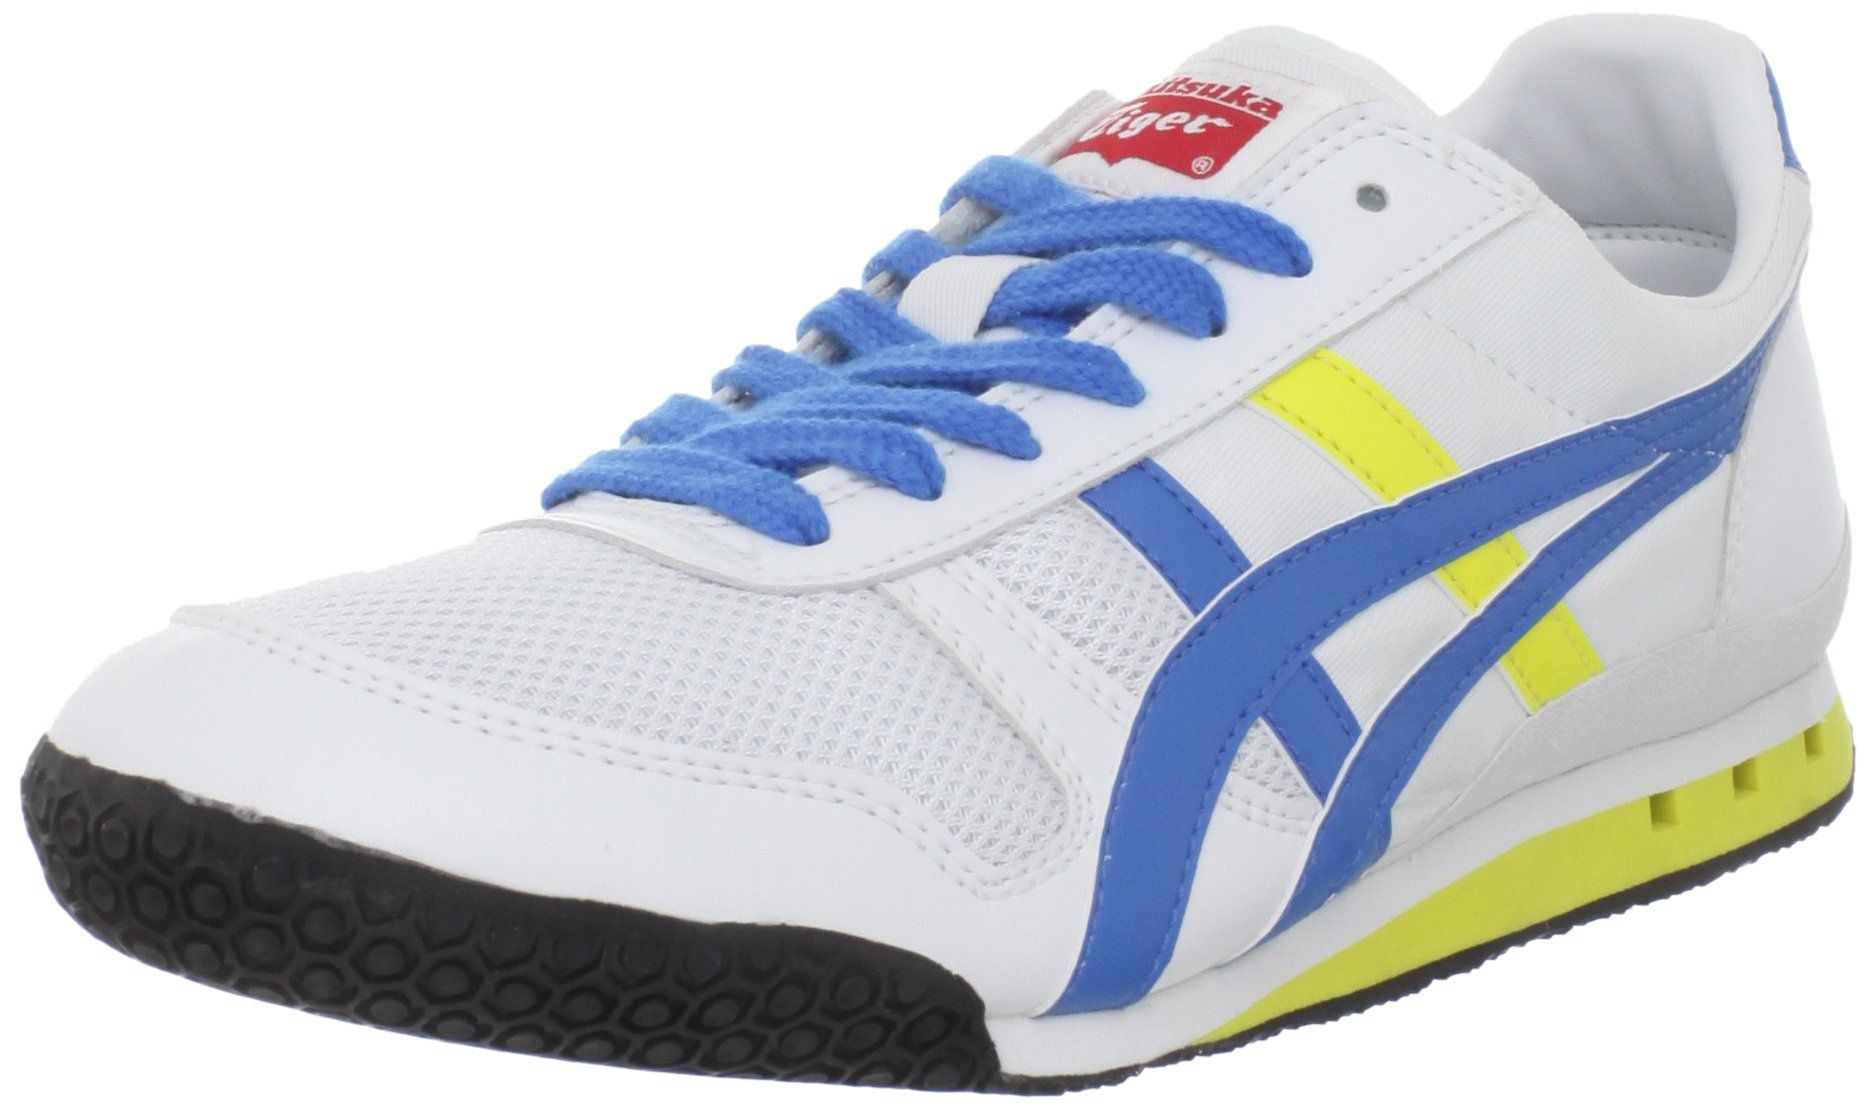 b3988bf819112 Amazon.com: Onitsuka Tiger Women's Ultimate 81 Sneaker: Shoes ...